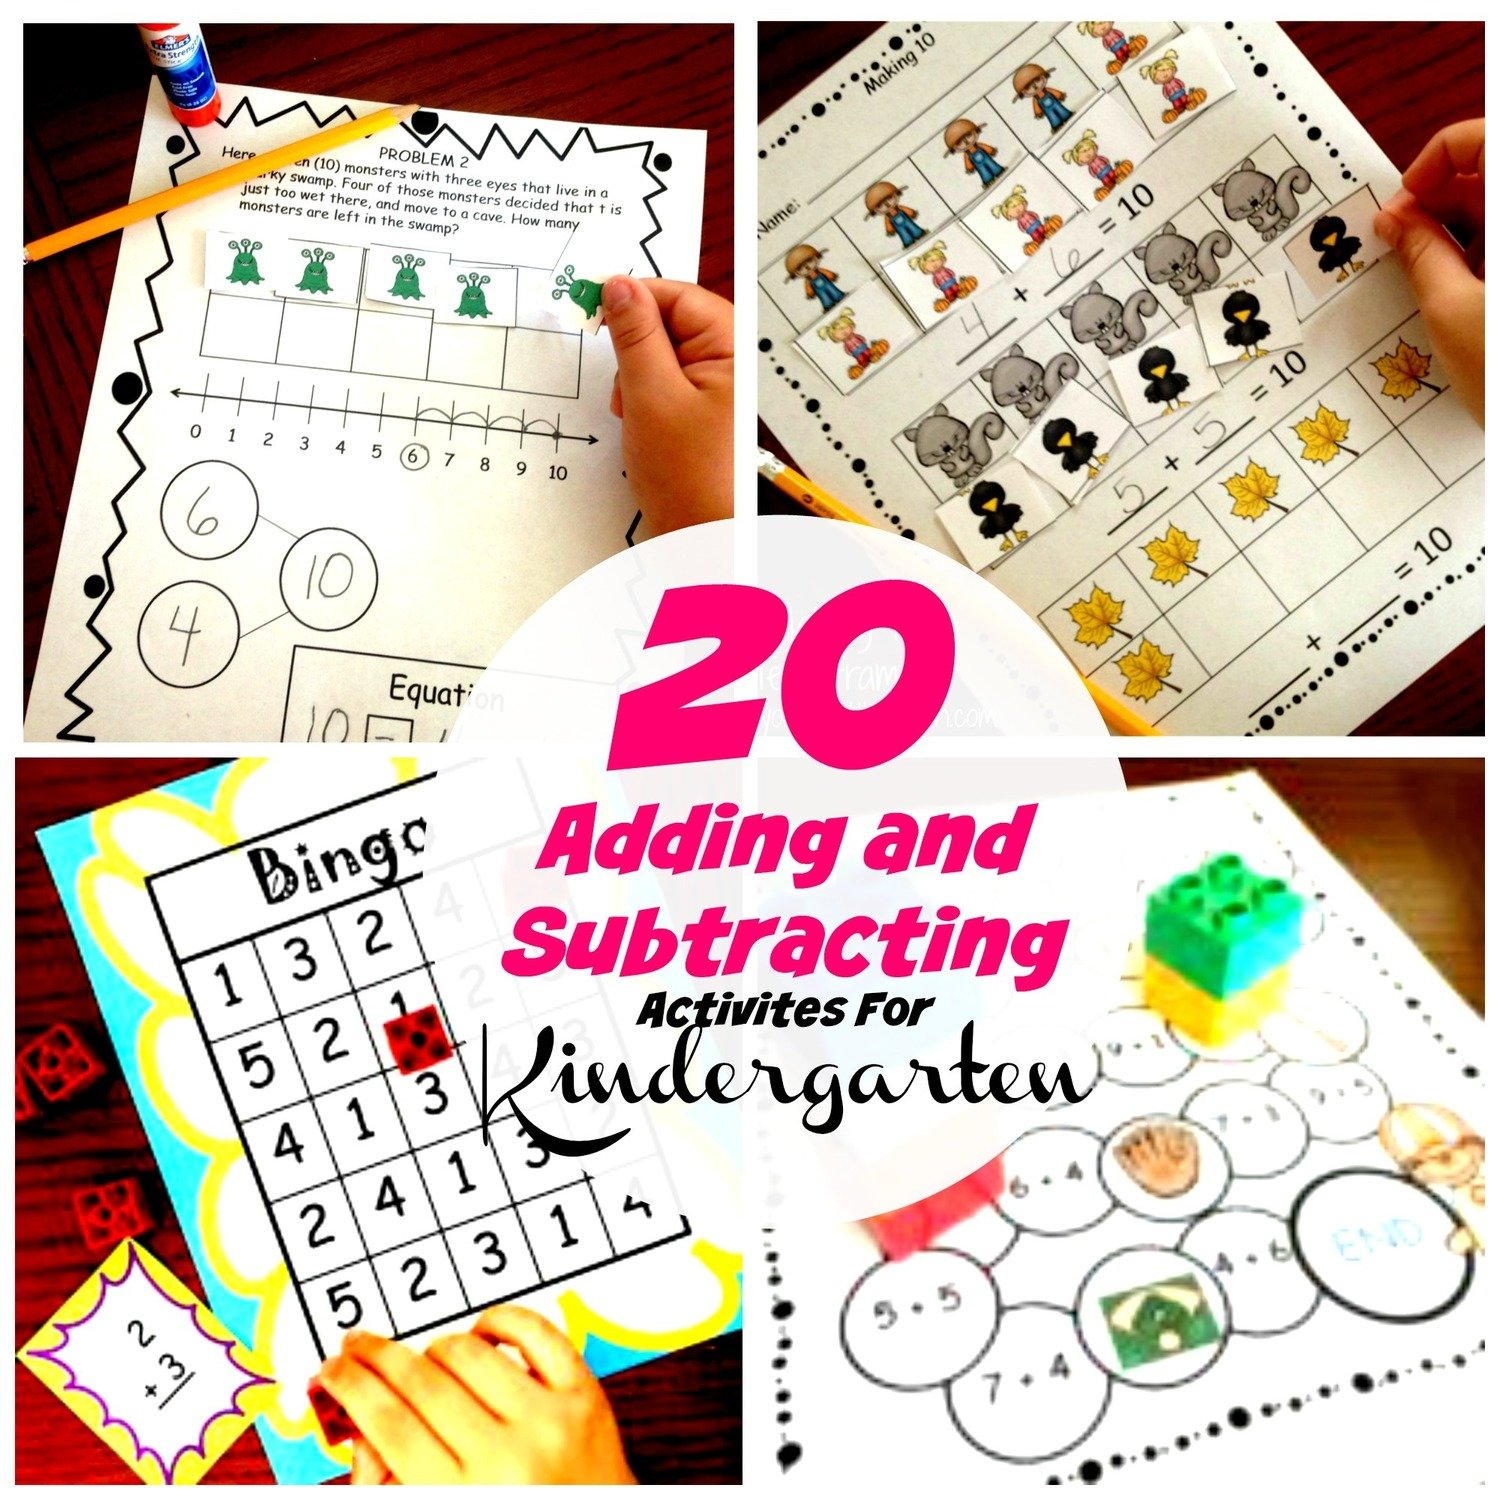 20 Adding and Subtracting Activities For Kindergarteners